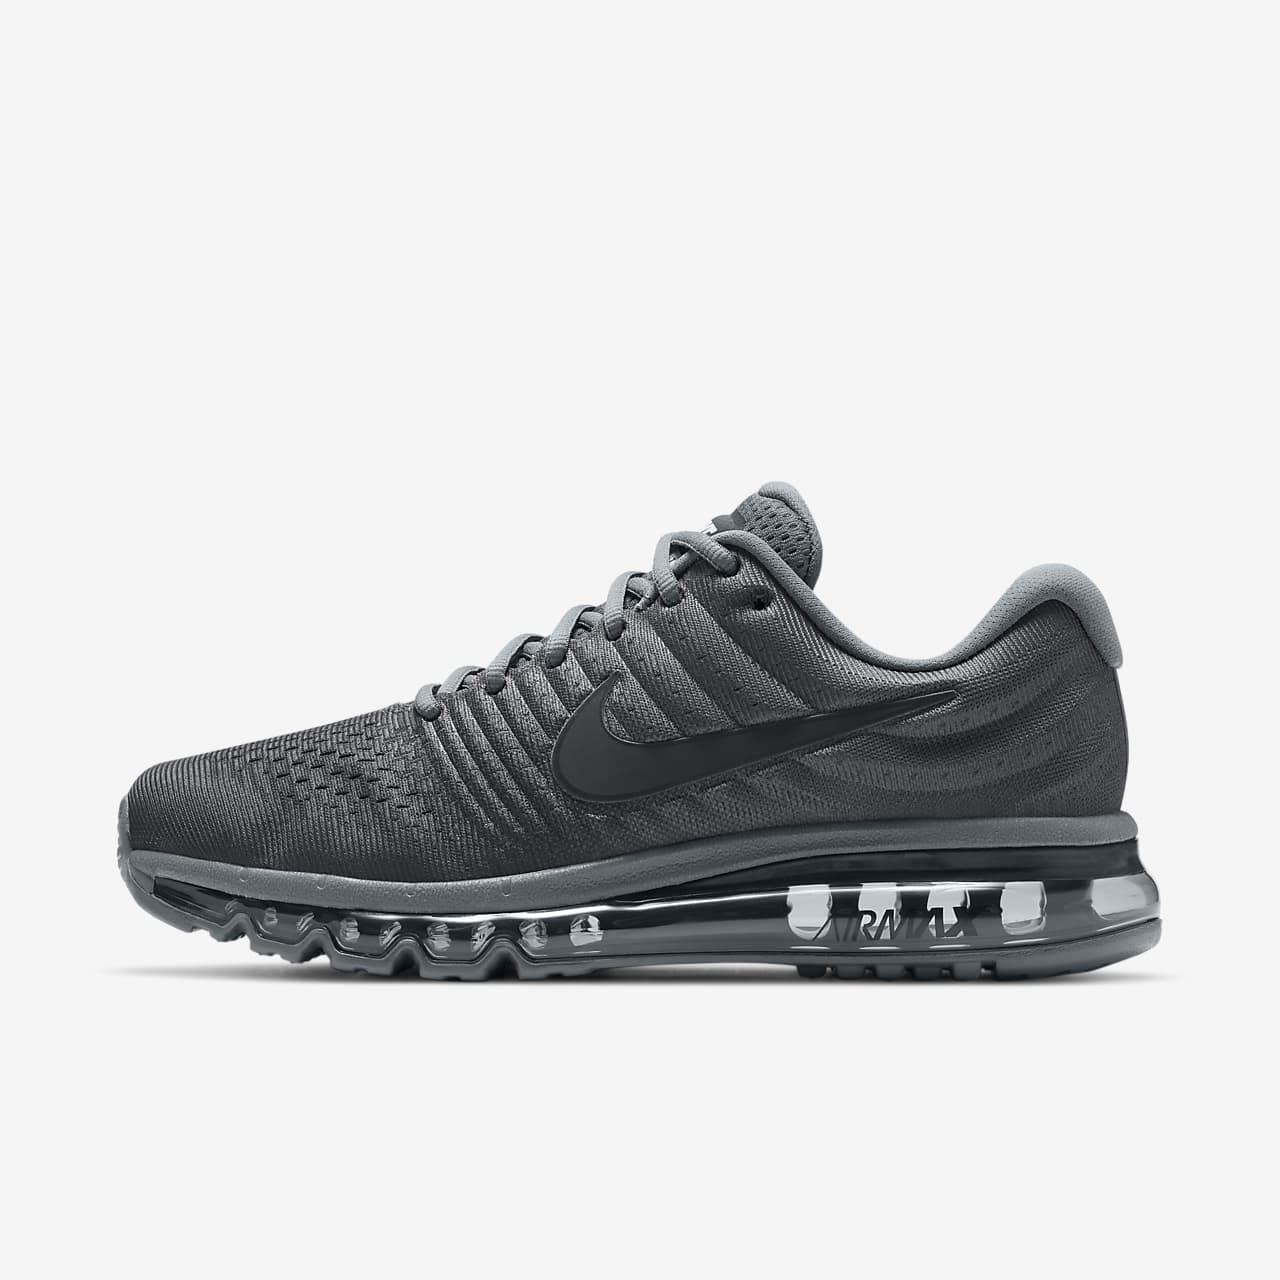 brand new 2b3b2 5b857 ... Nike Air Max 2017 Men s Shoe